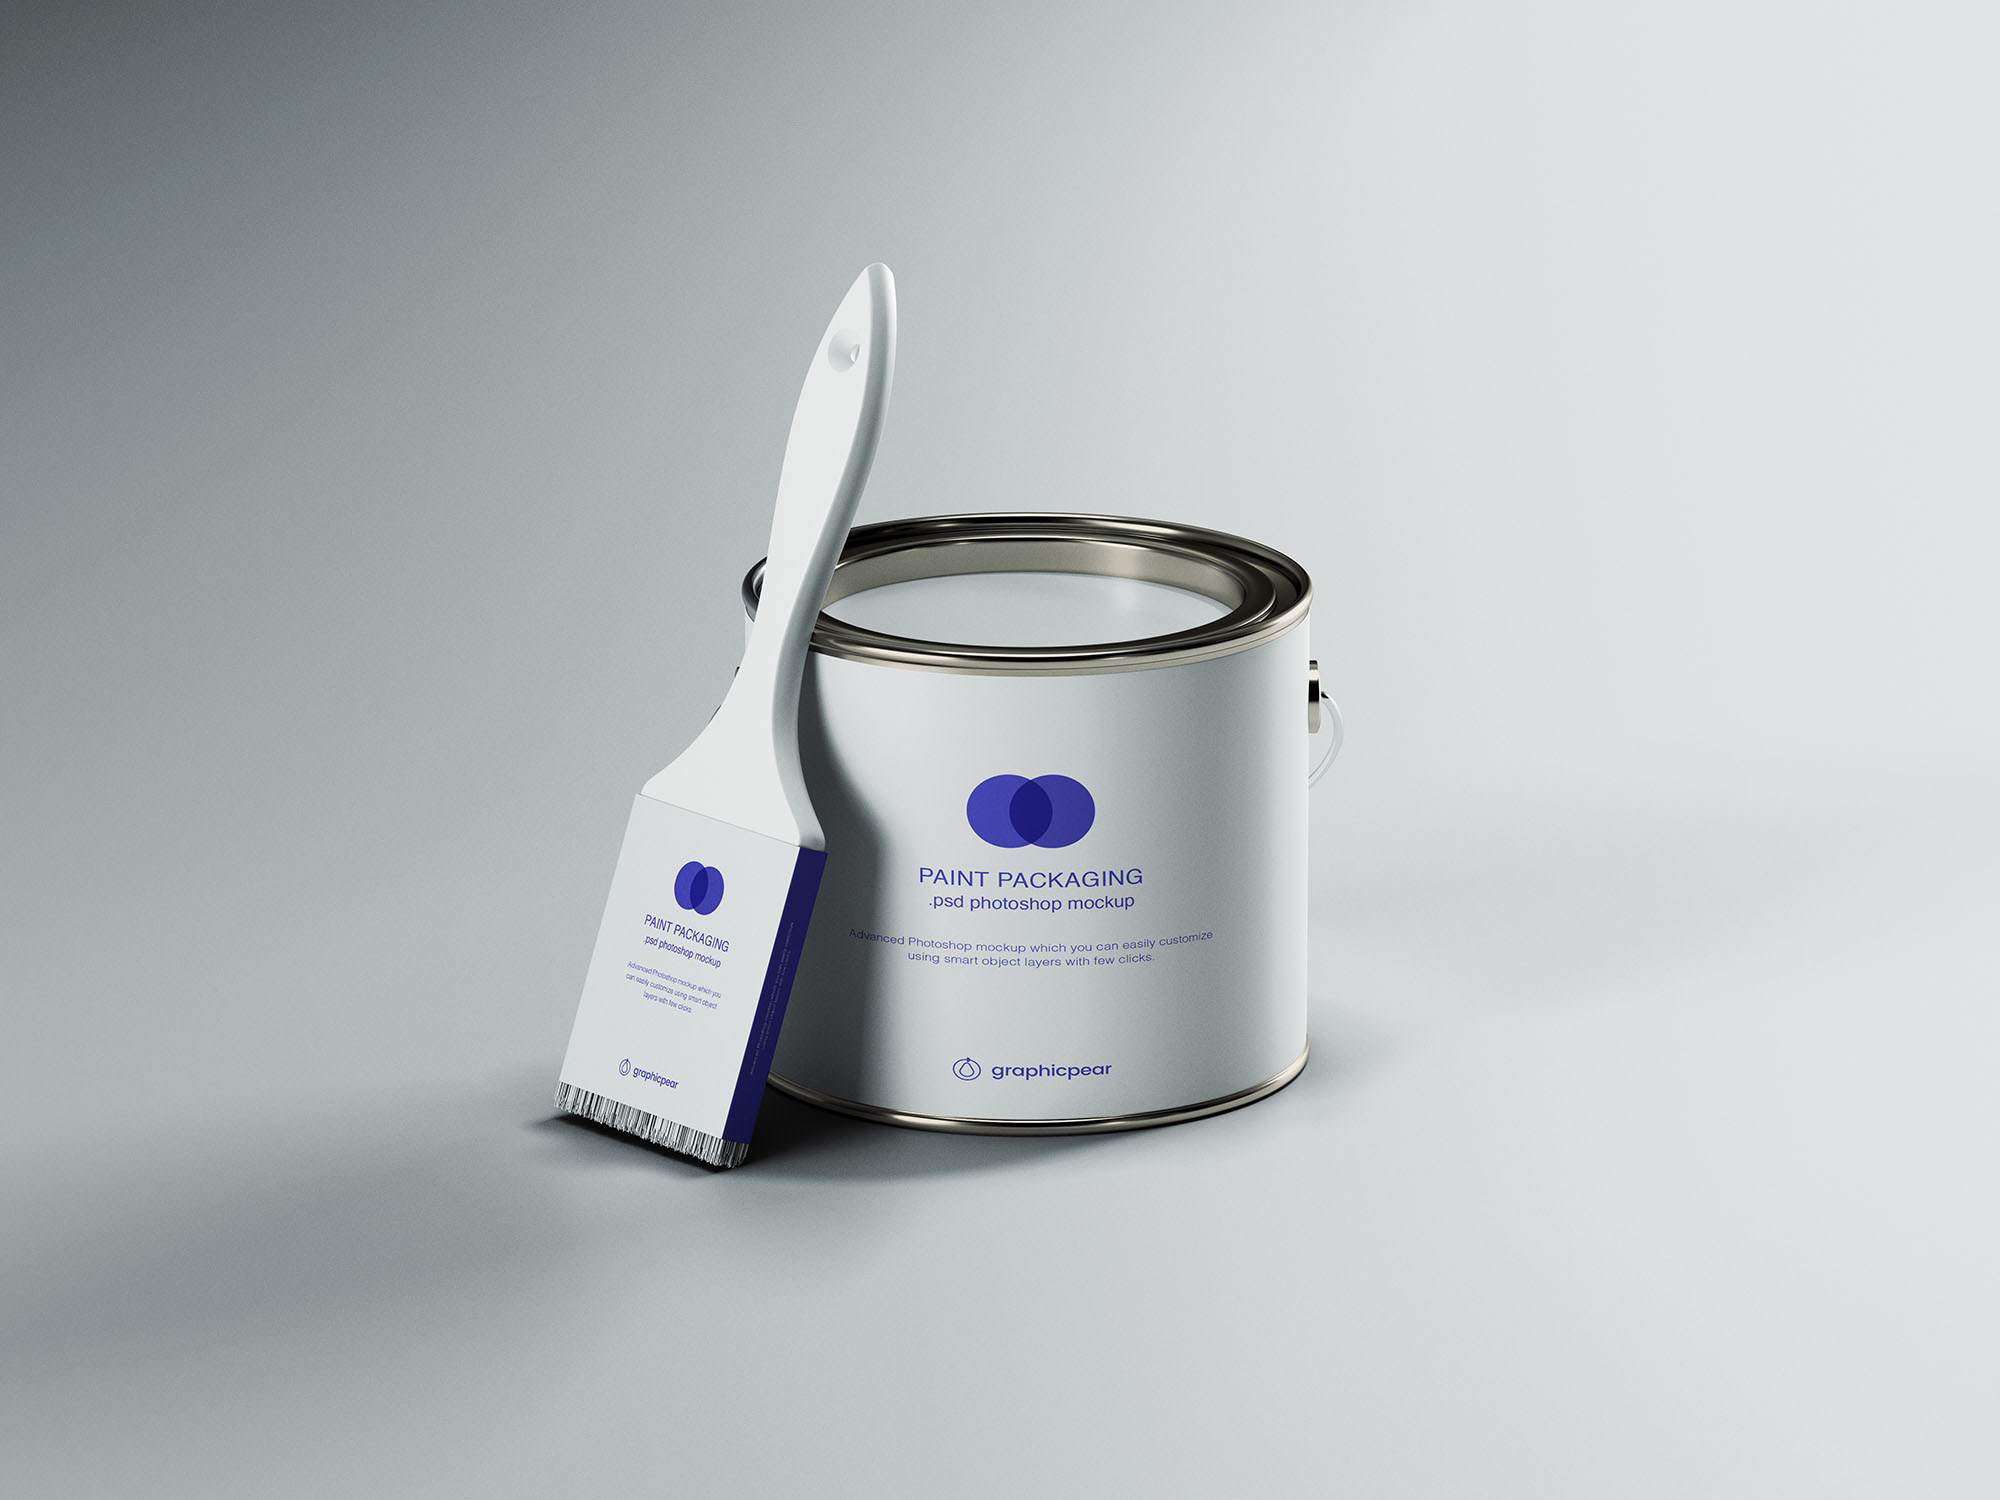 Paint Can with Brush Packaging Mockup